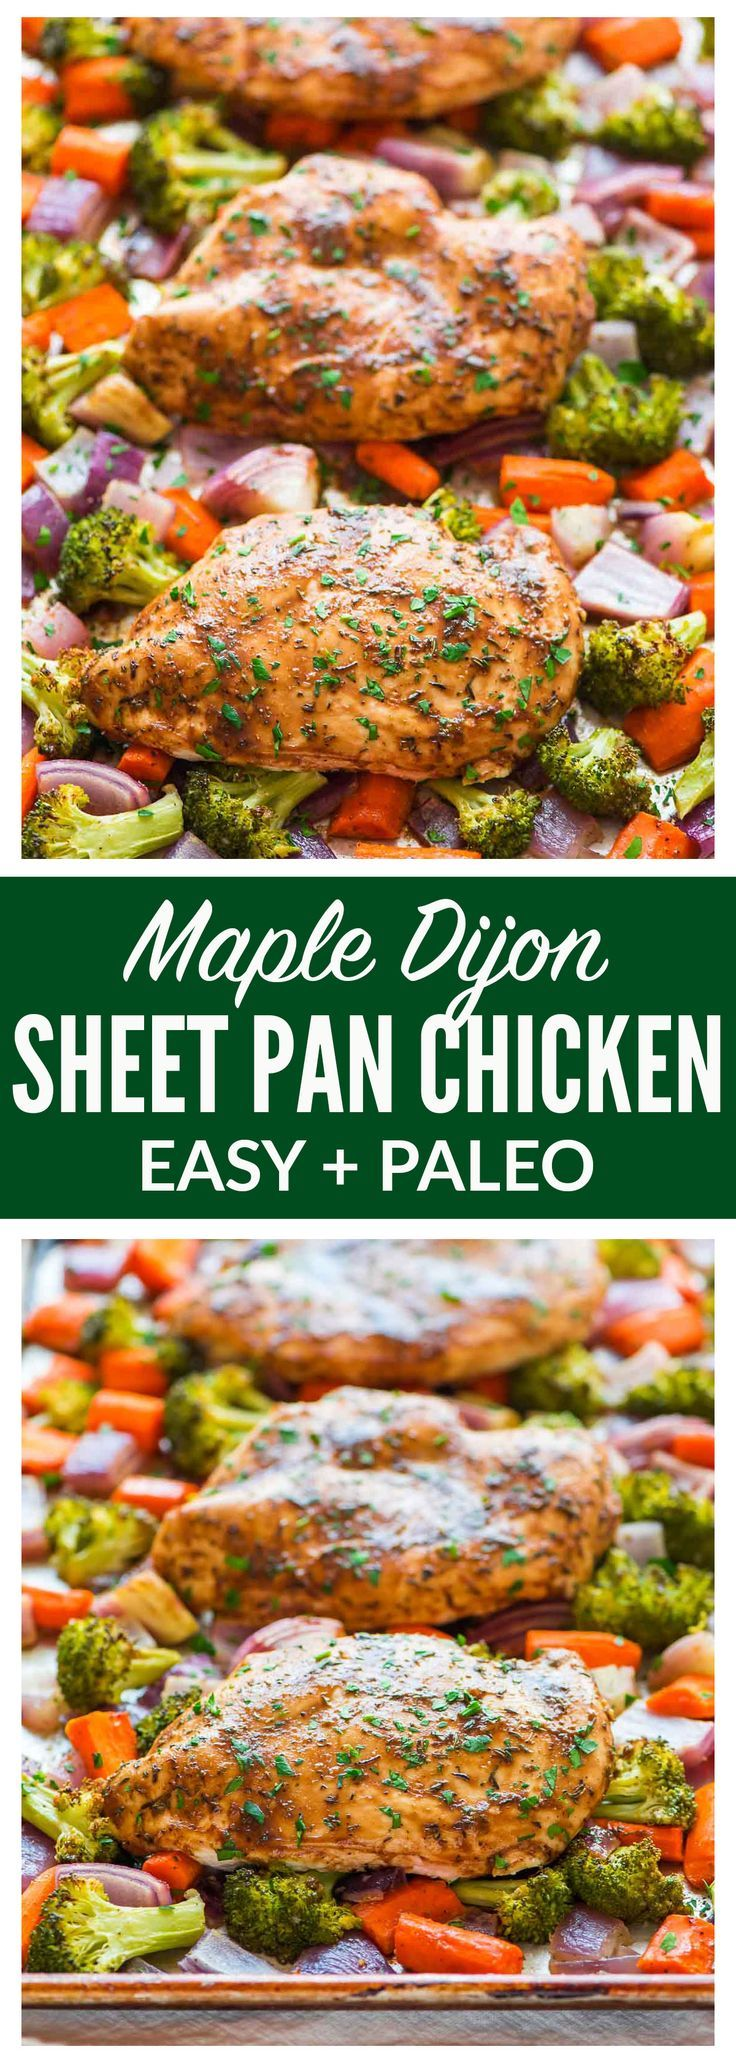 Maple Dijon Chicken and Vegetables. An easy, healthy dinner recipe that bakes on a single sheet pan for easy clean up! The chicken is juicy and tender and the maple Dijon glaze is absolutely delicious. {Gluten Free, Paleo, and Whole 30 friendly} Recipe at wellplated.com   @wellplated